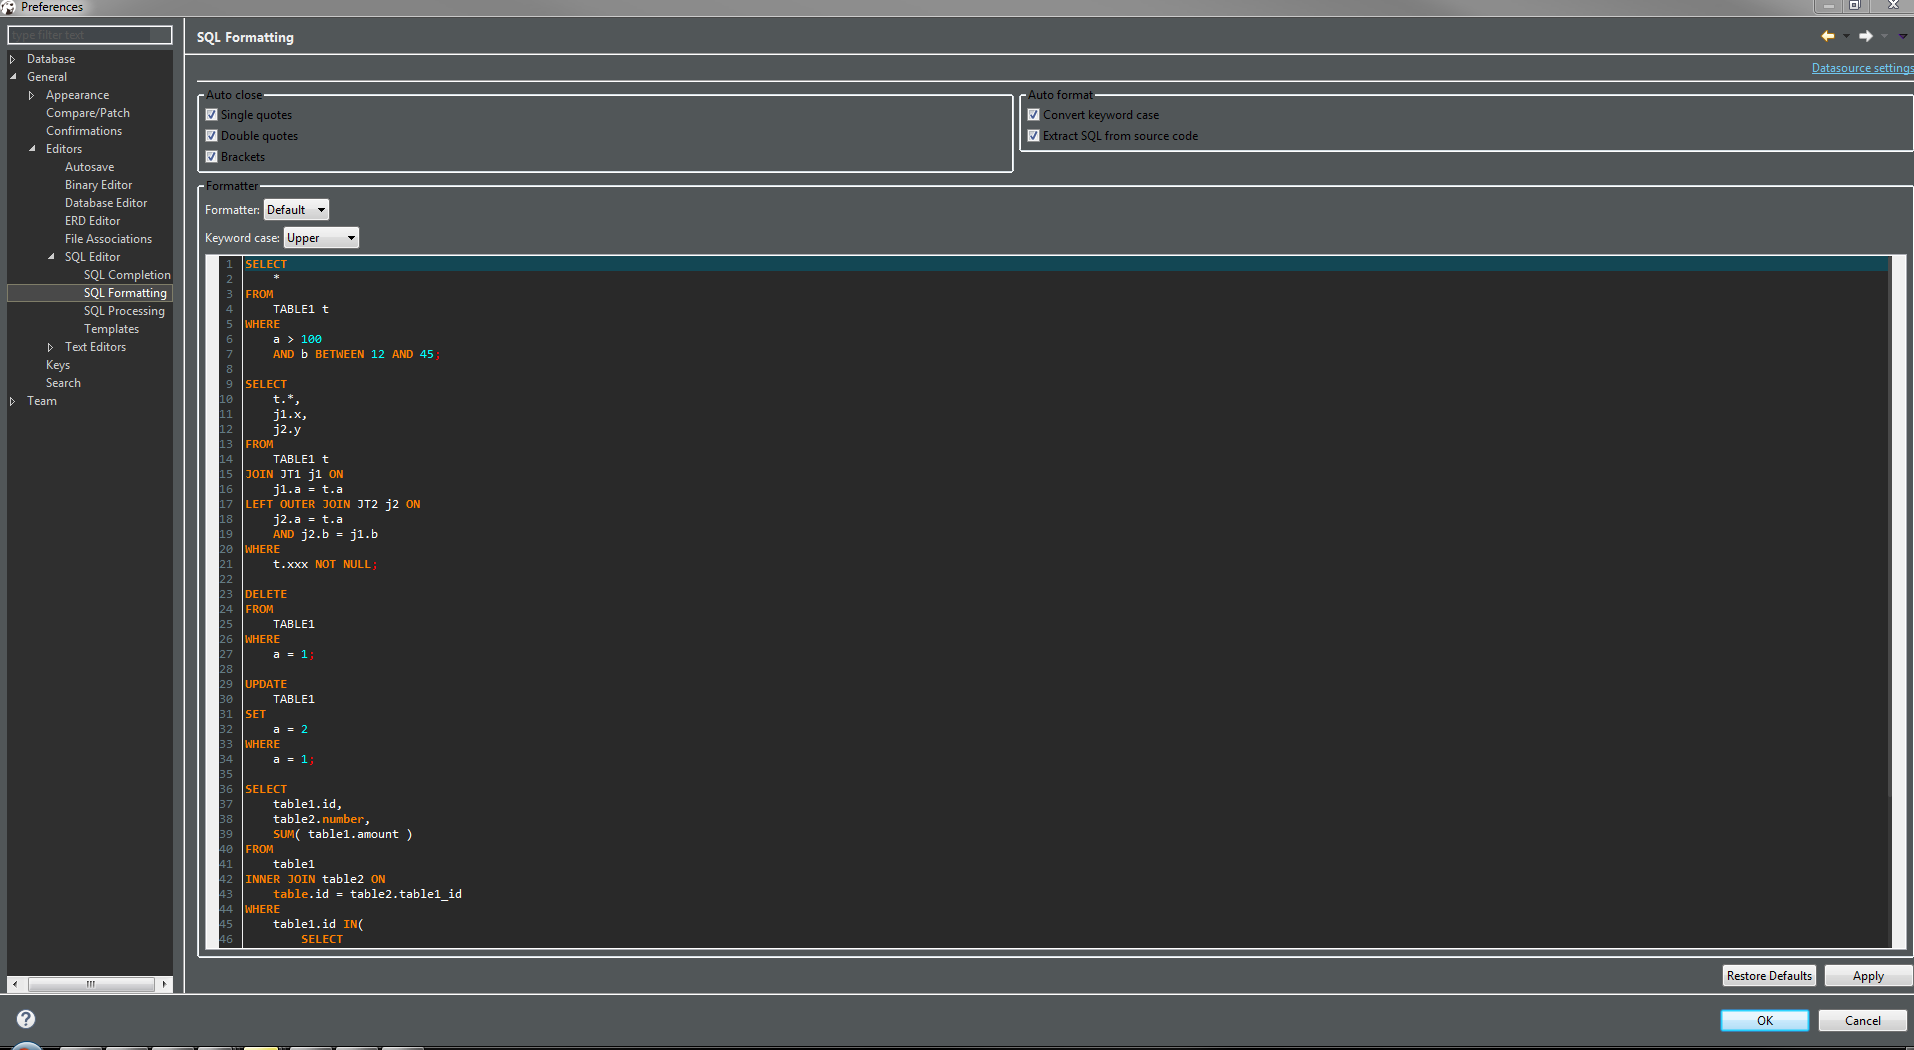 Sql server management studio dark theme